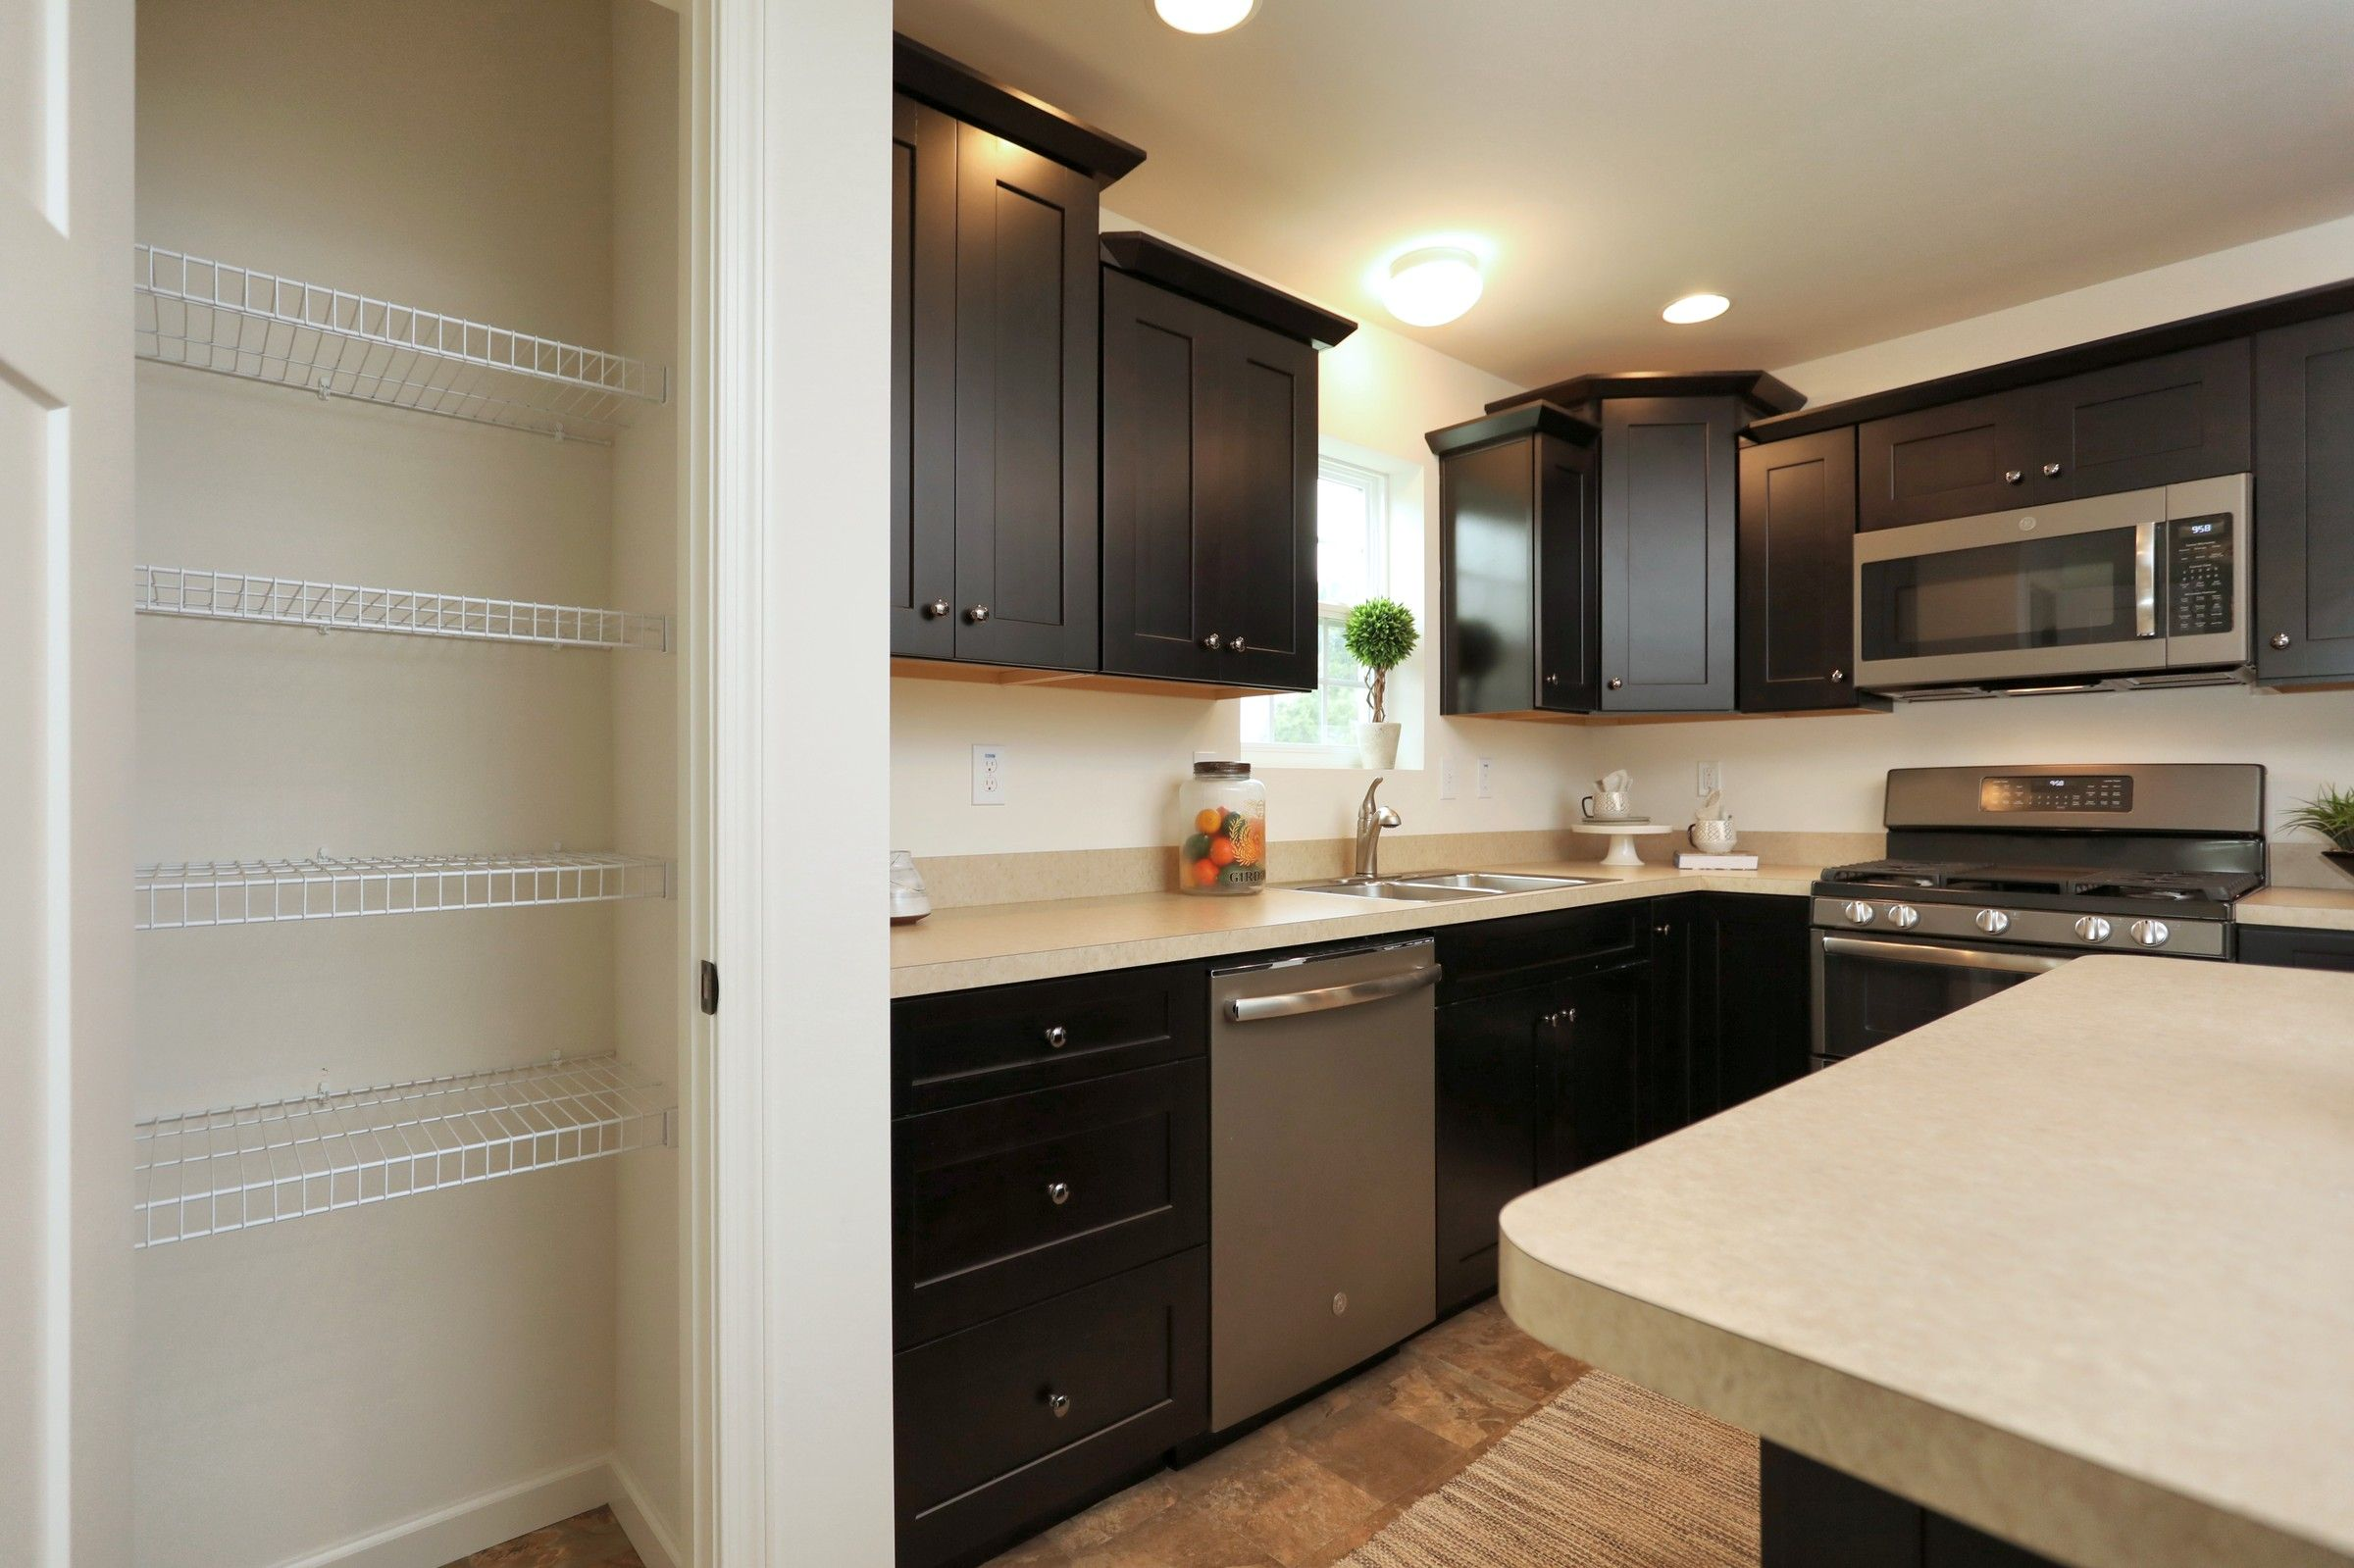 Kitchen featured in the Andrews Vintage By Keystone Custom Homes in York, PA